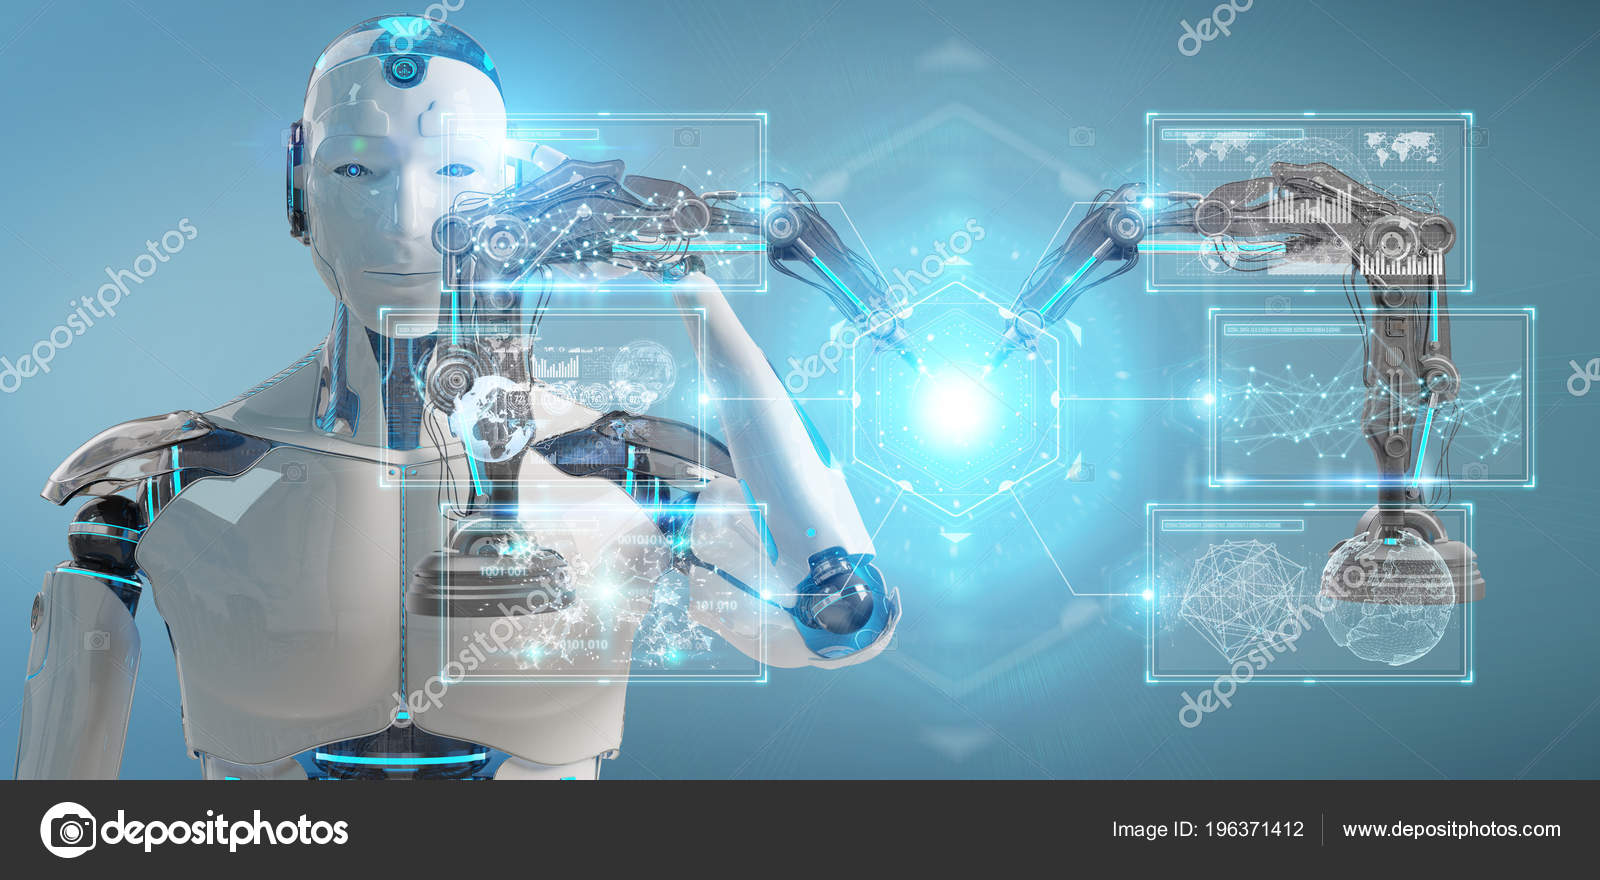 White Man Robot Blurred Background Using Robotics Arms Digital